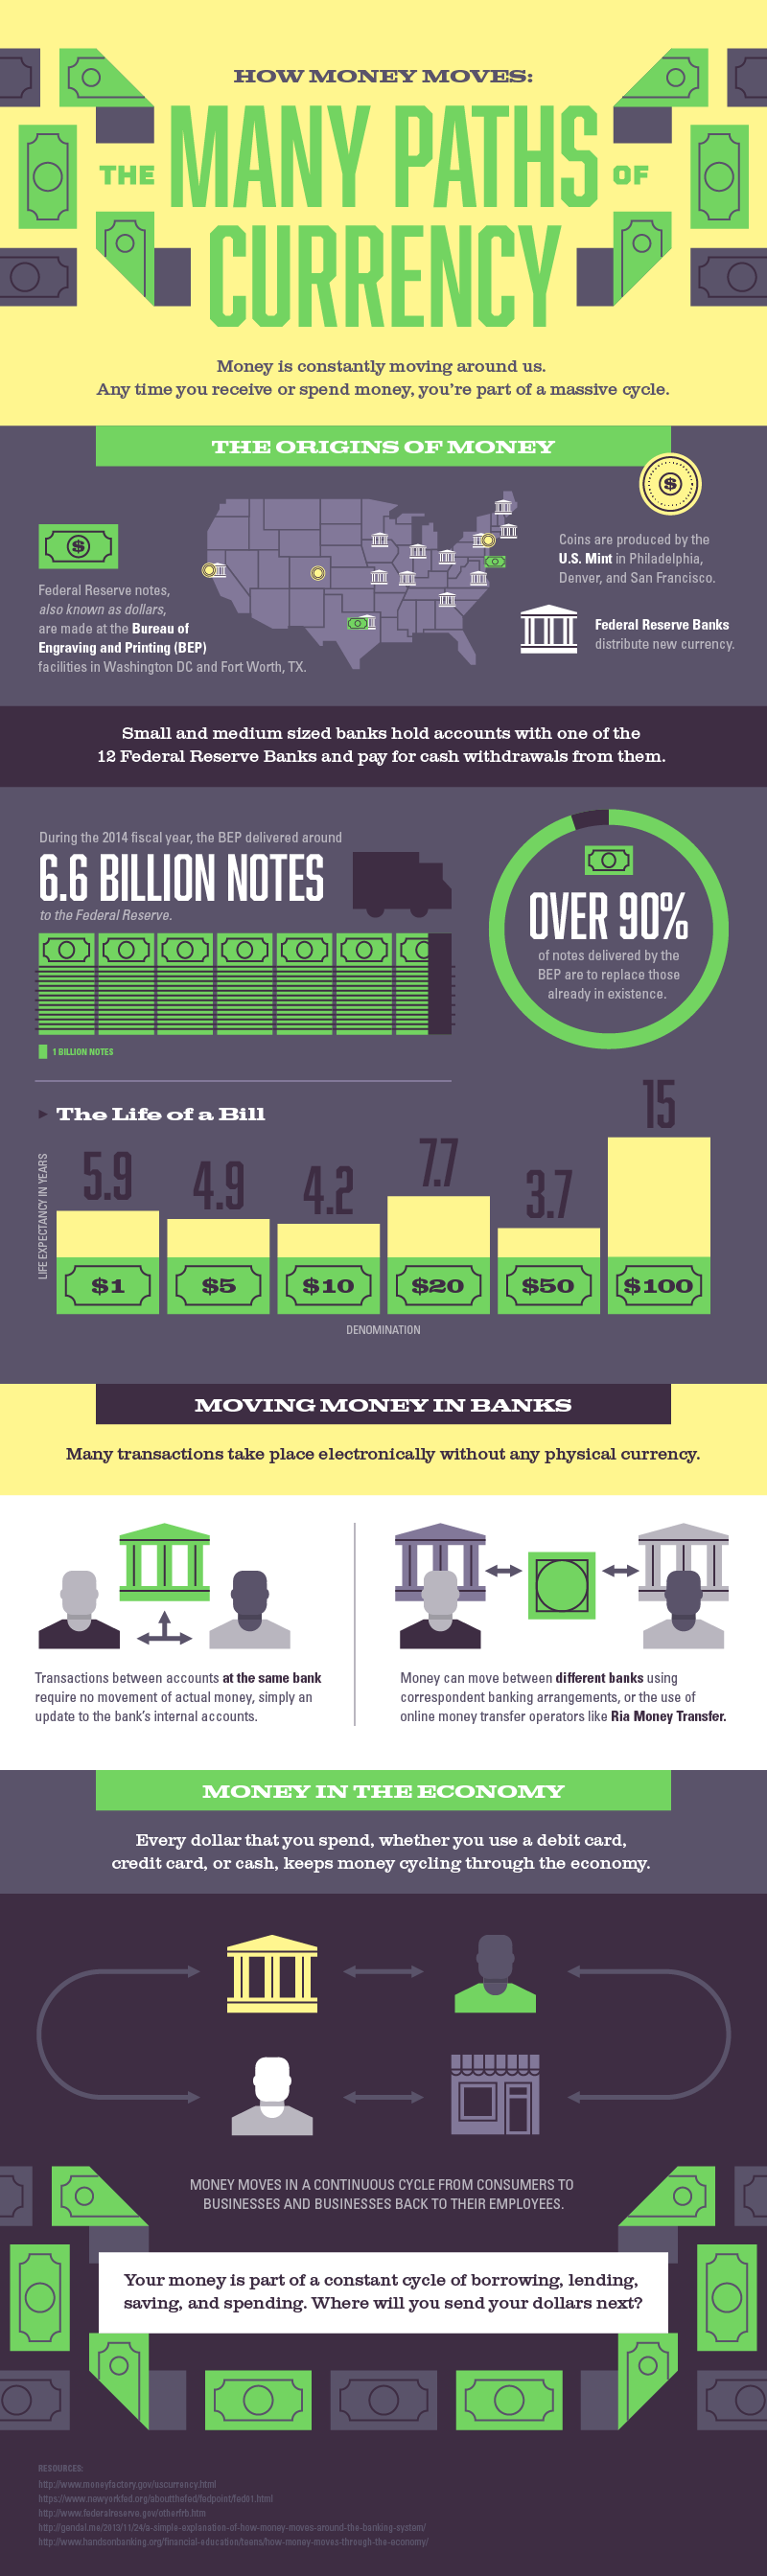 How Money Moves Infographic